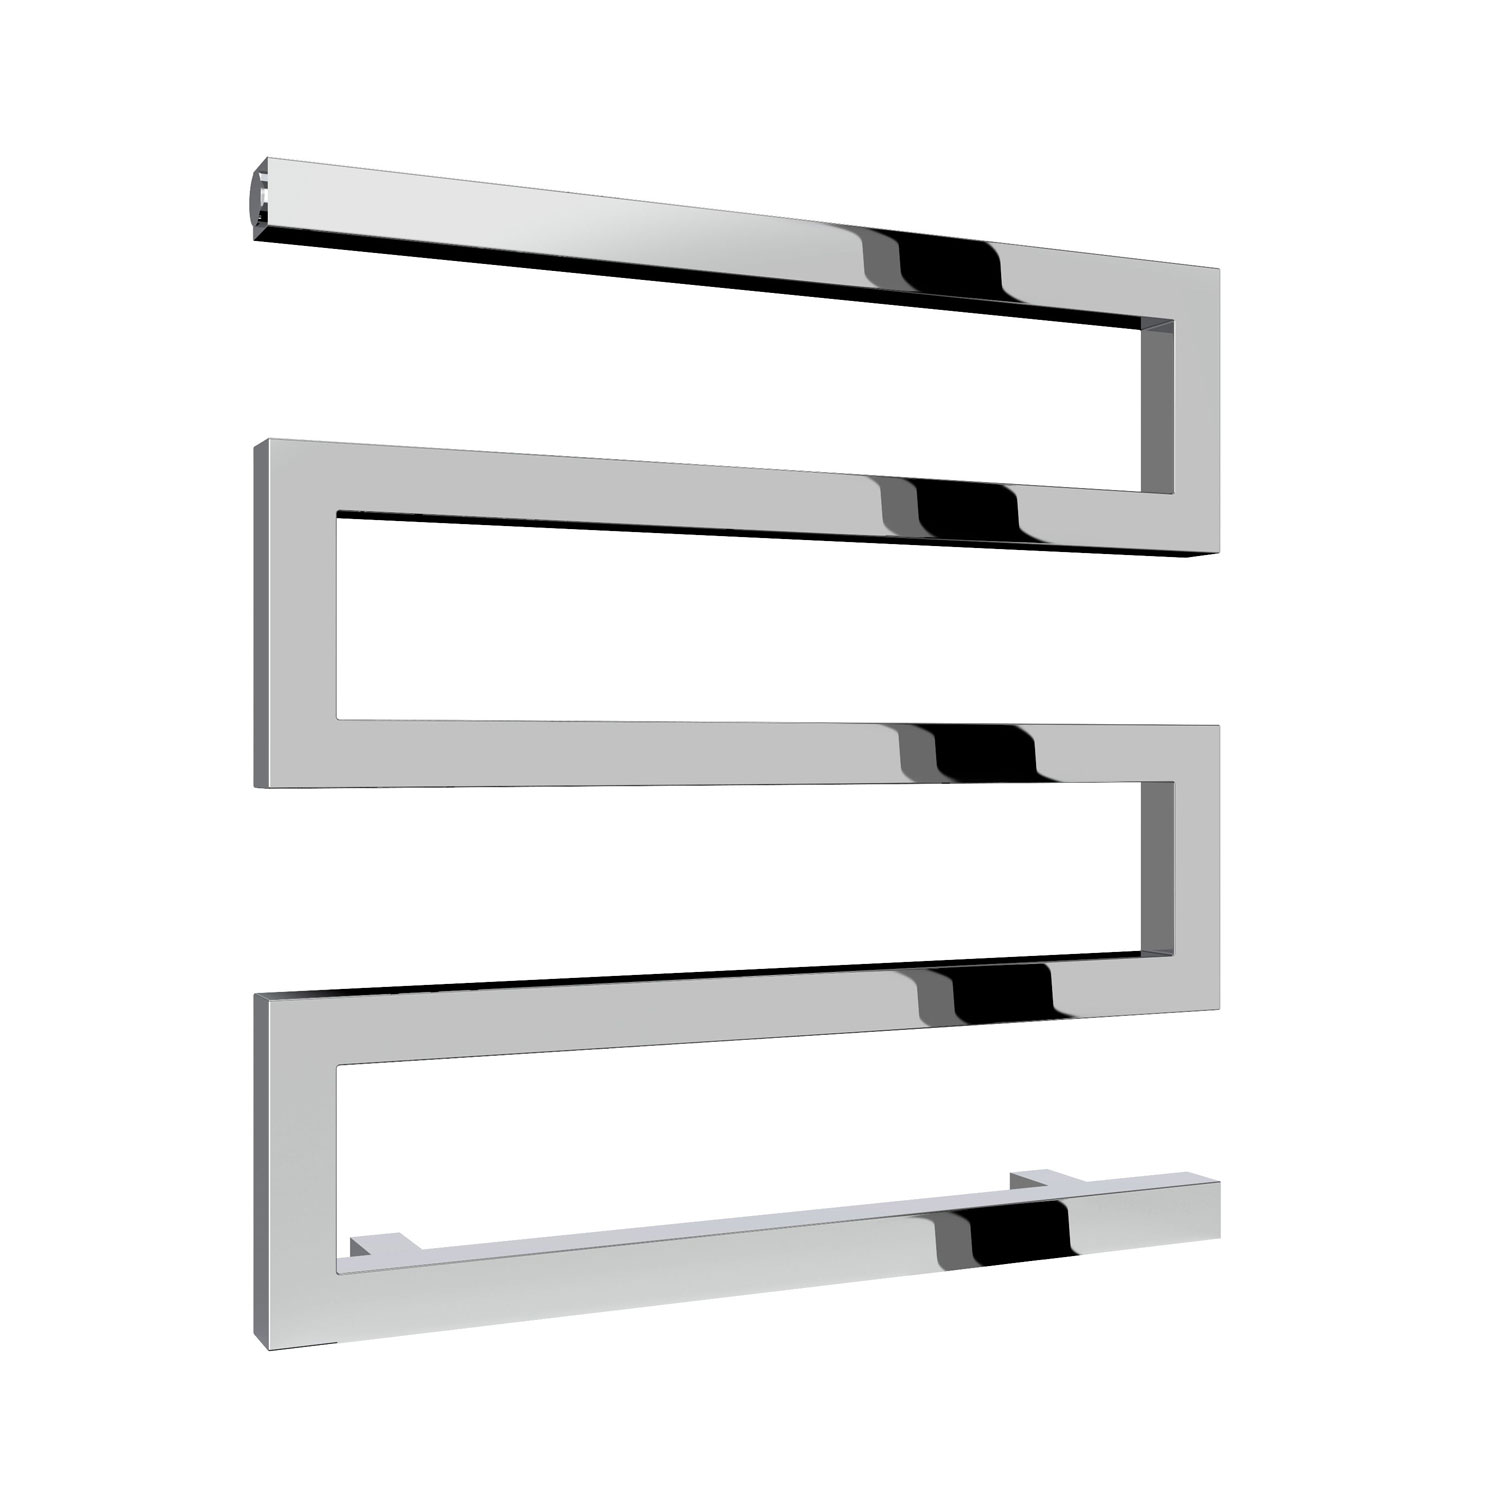 Reina Serpe Designer Heated Towel Rail 510mm H x 500mm W Chrome